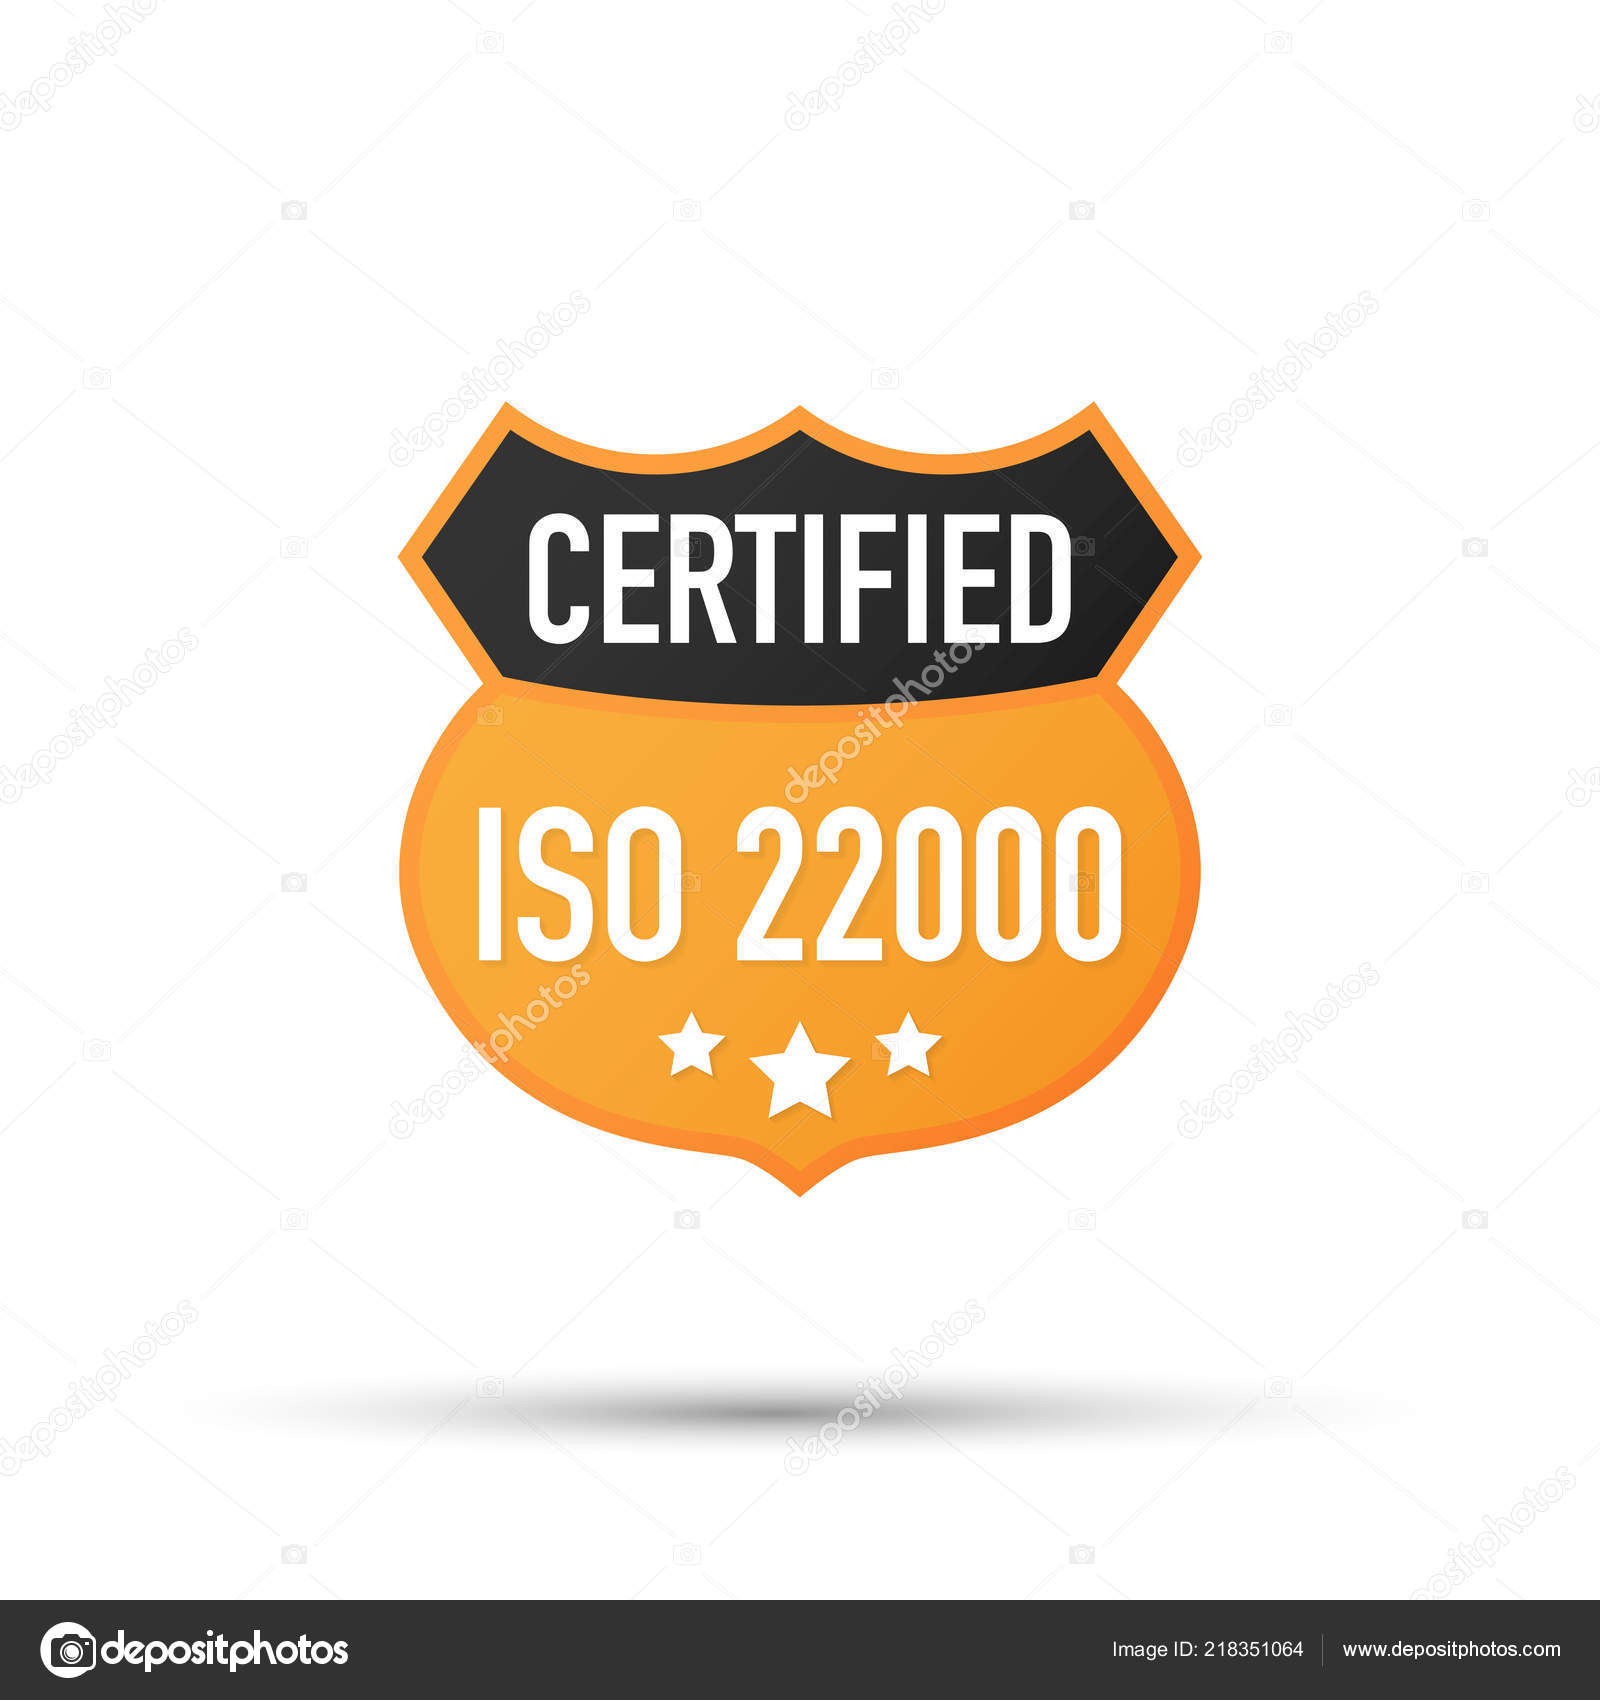 ISO 22000 Certified Badge Icon Certification Stamp Flat Design Vector Illustration